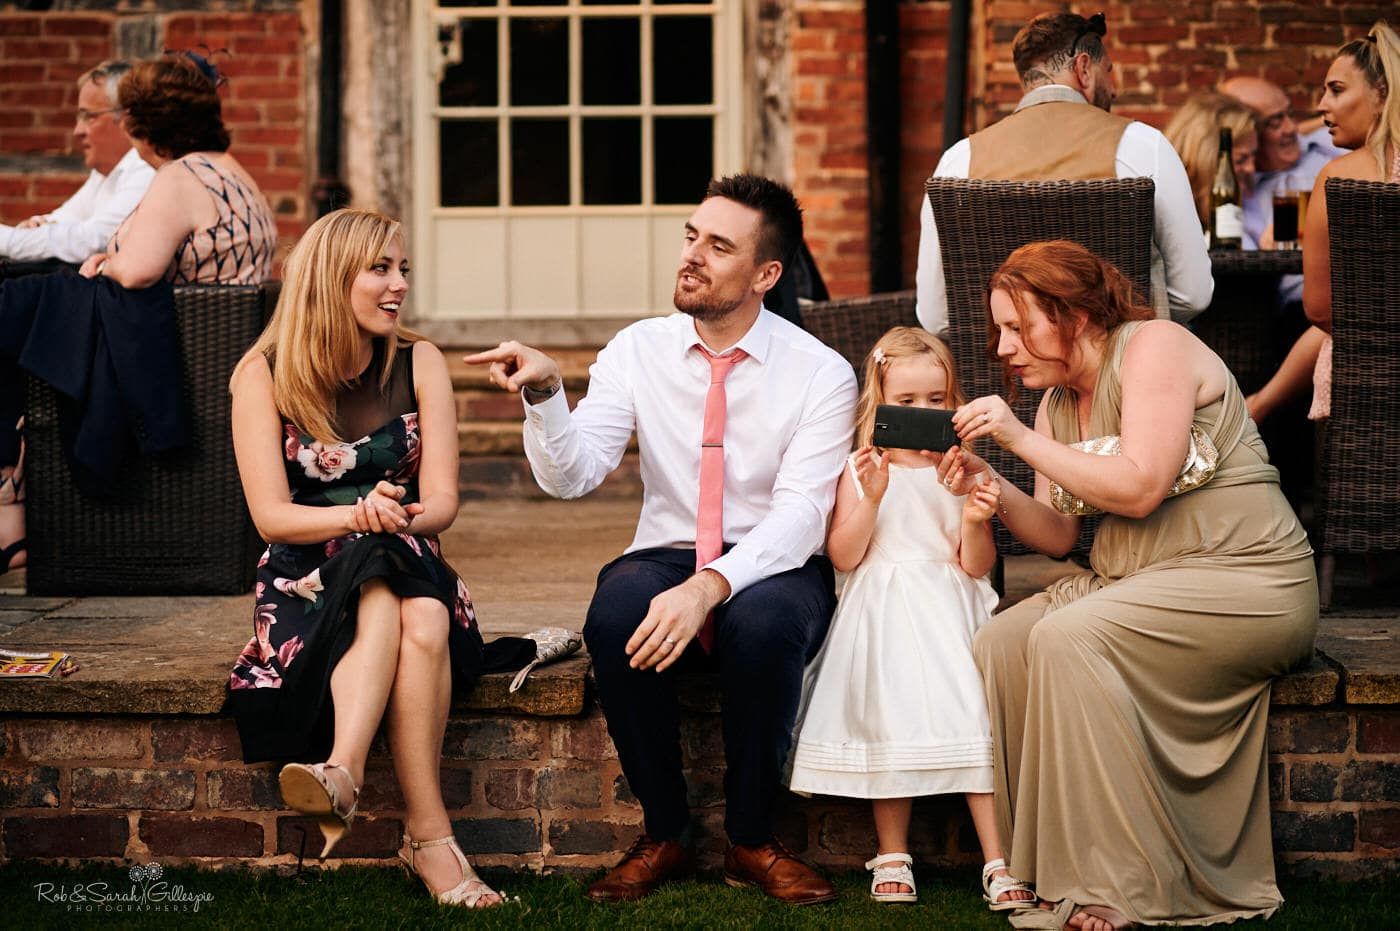 Wedding guests chatting and relaxing at Gorcott Hall wedding in evening light